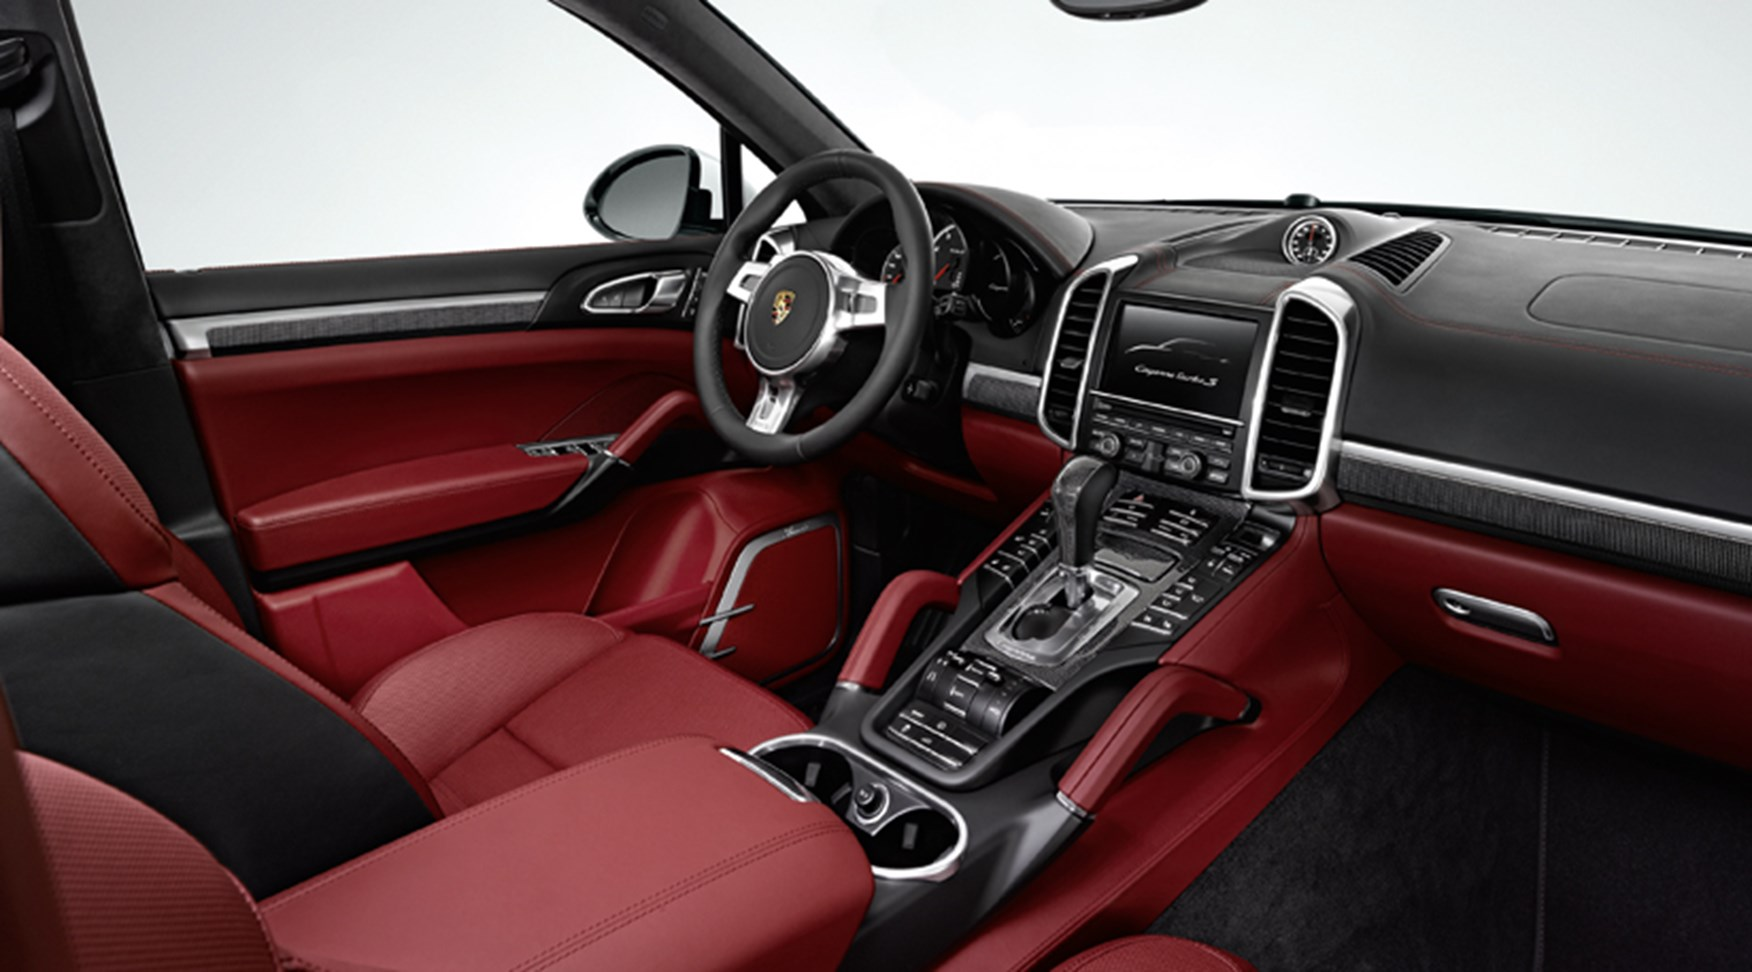 Porsche Cayenne Turbo S 2012 First Official Pictures By Car Magazine